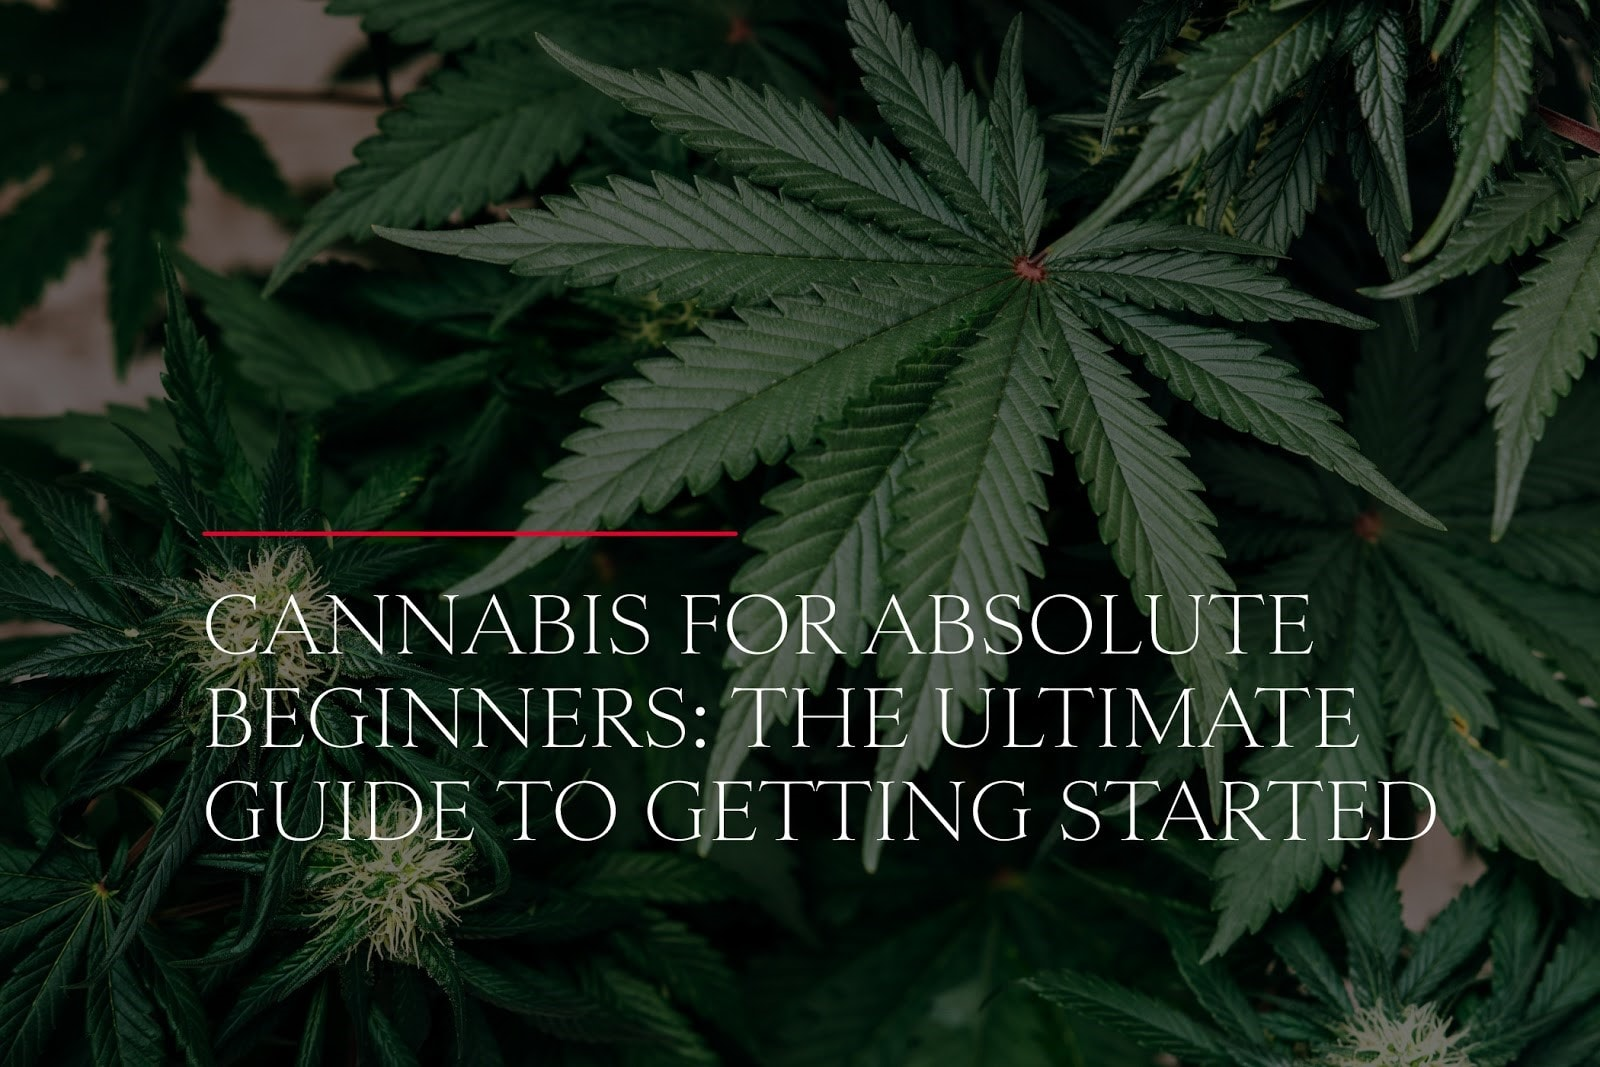 Cannabis for Absolute Beginners: The Ultimate Guide to Getting Started